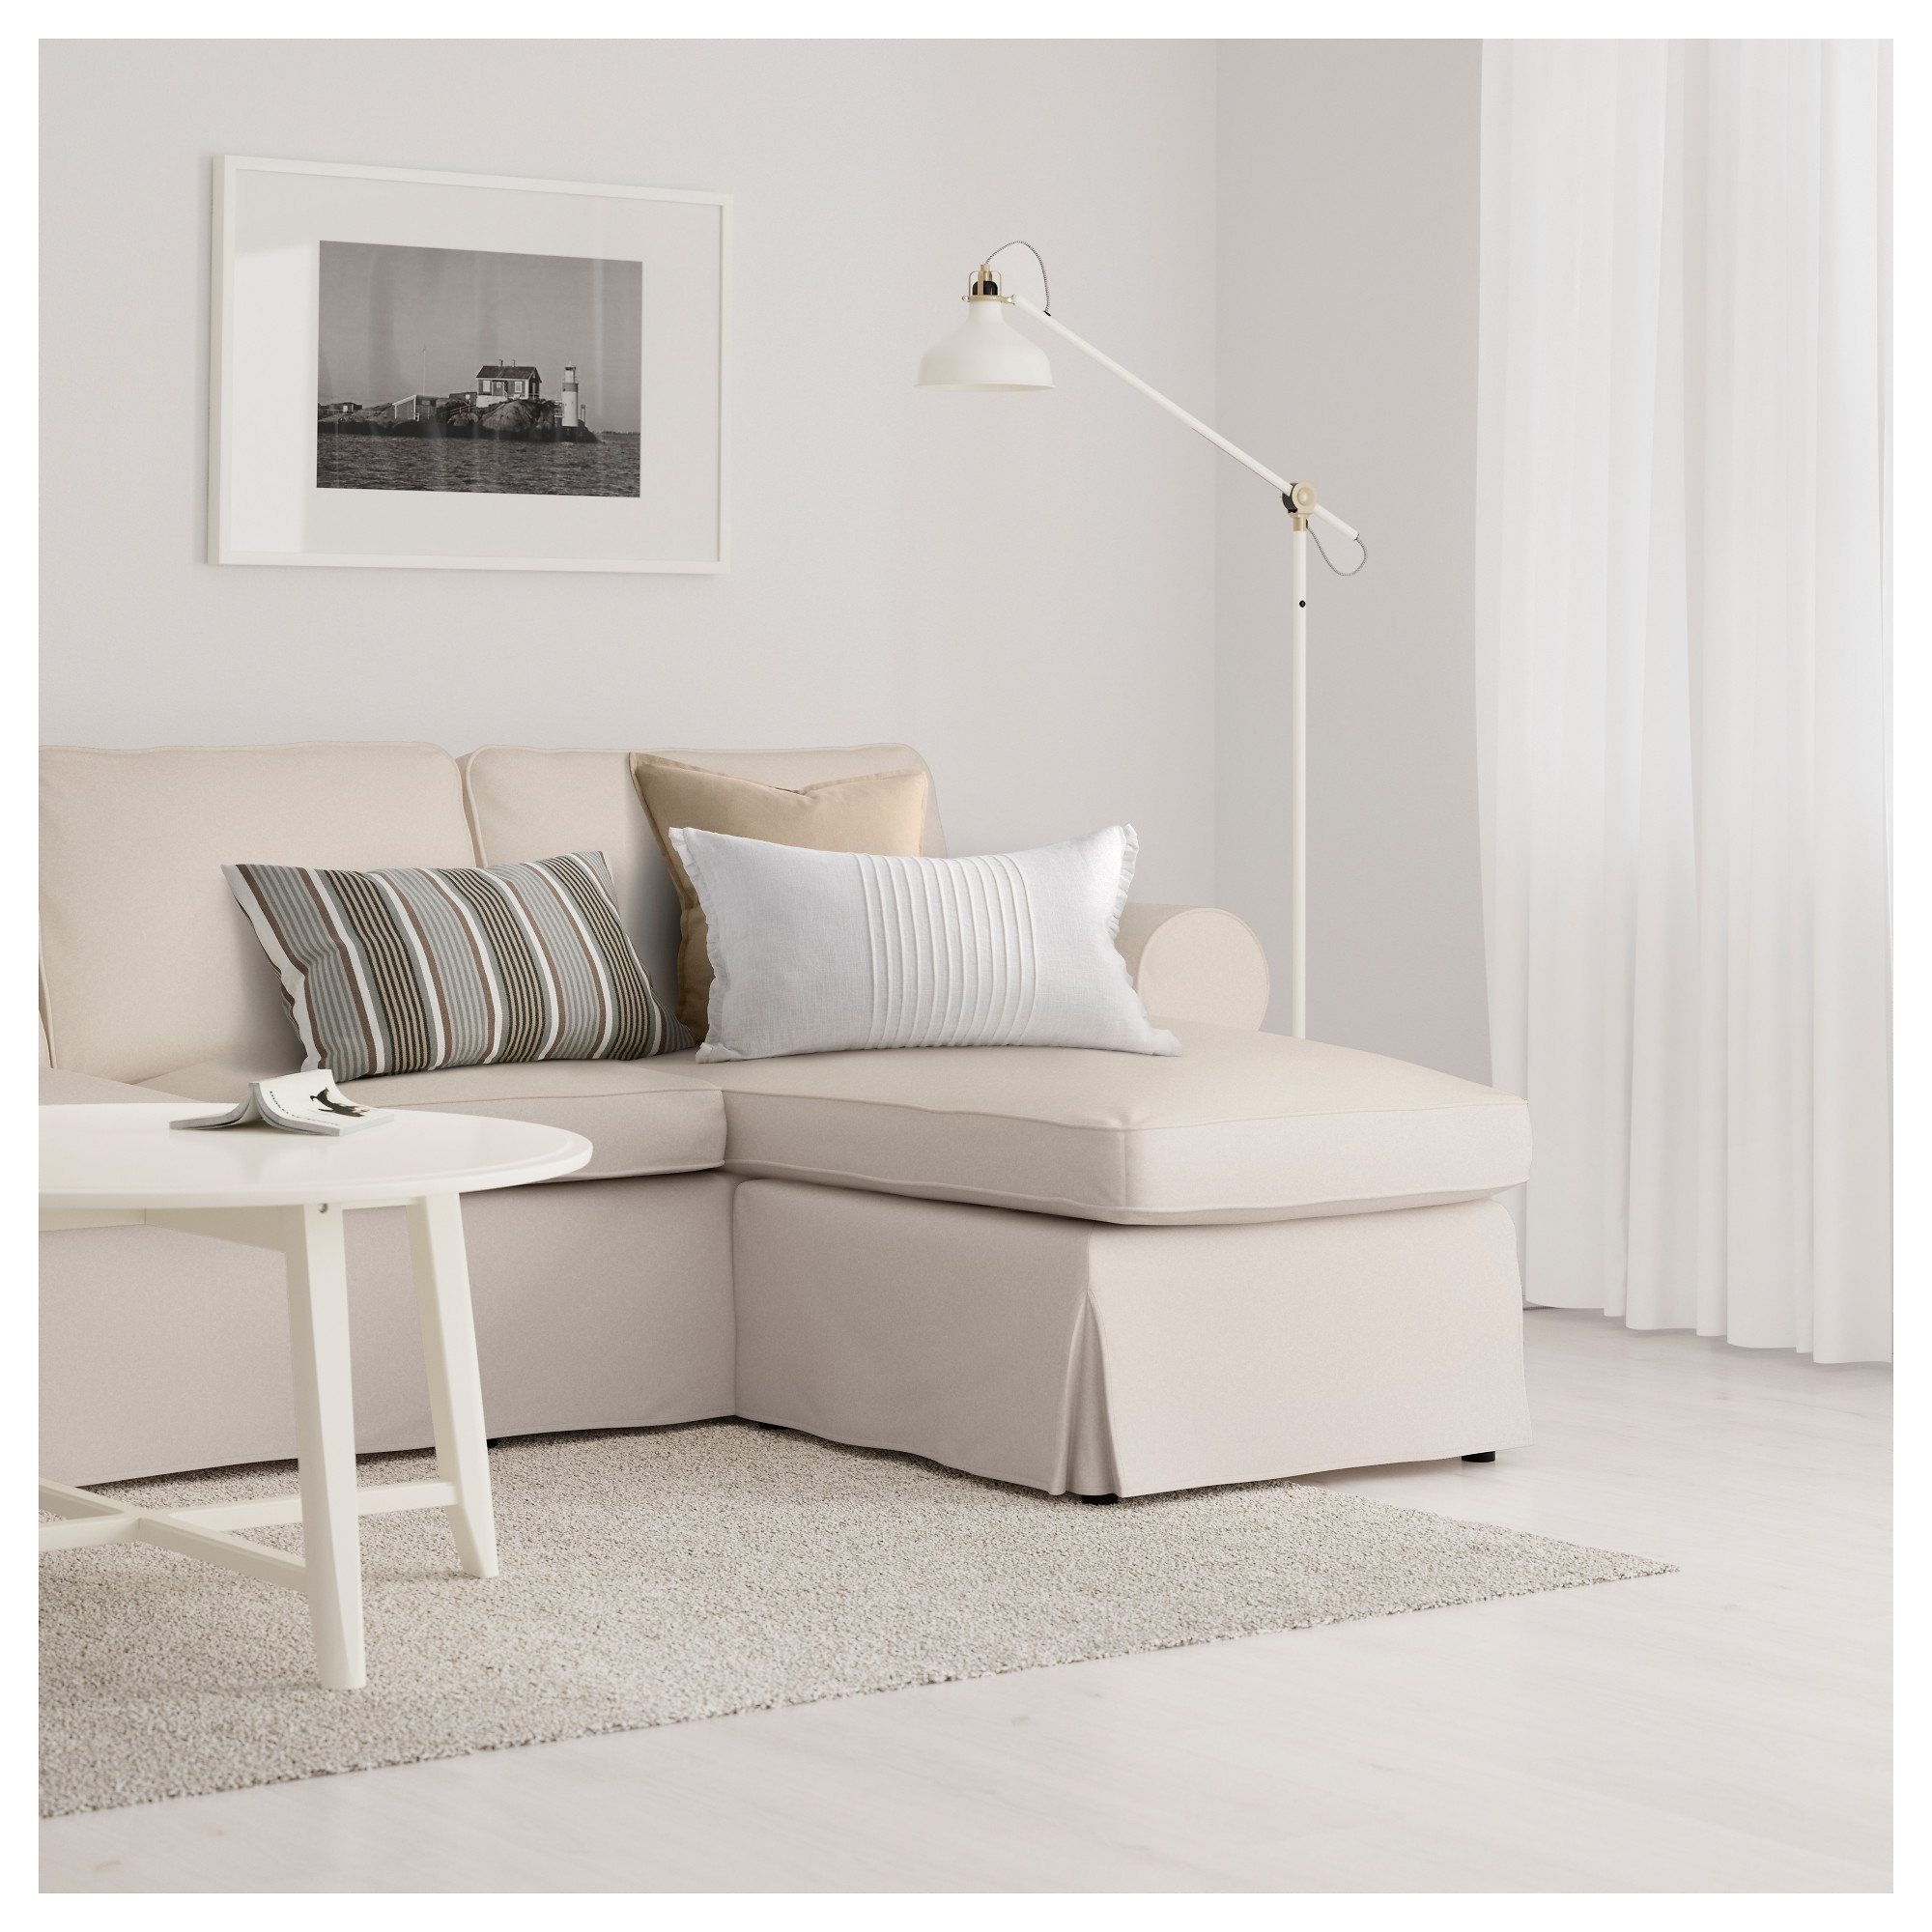 Widely Used Ektorp Sofa – With Chaise/nordvalla Light Blue – Ikea Pertaining To Ikea Ektorp Chaises (View 15 of 15)